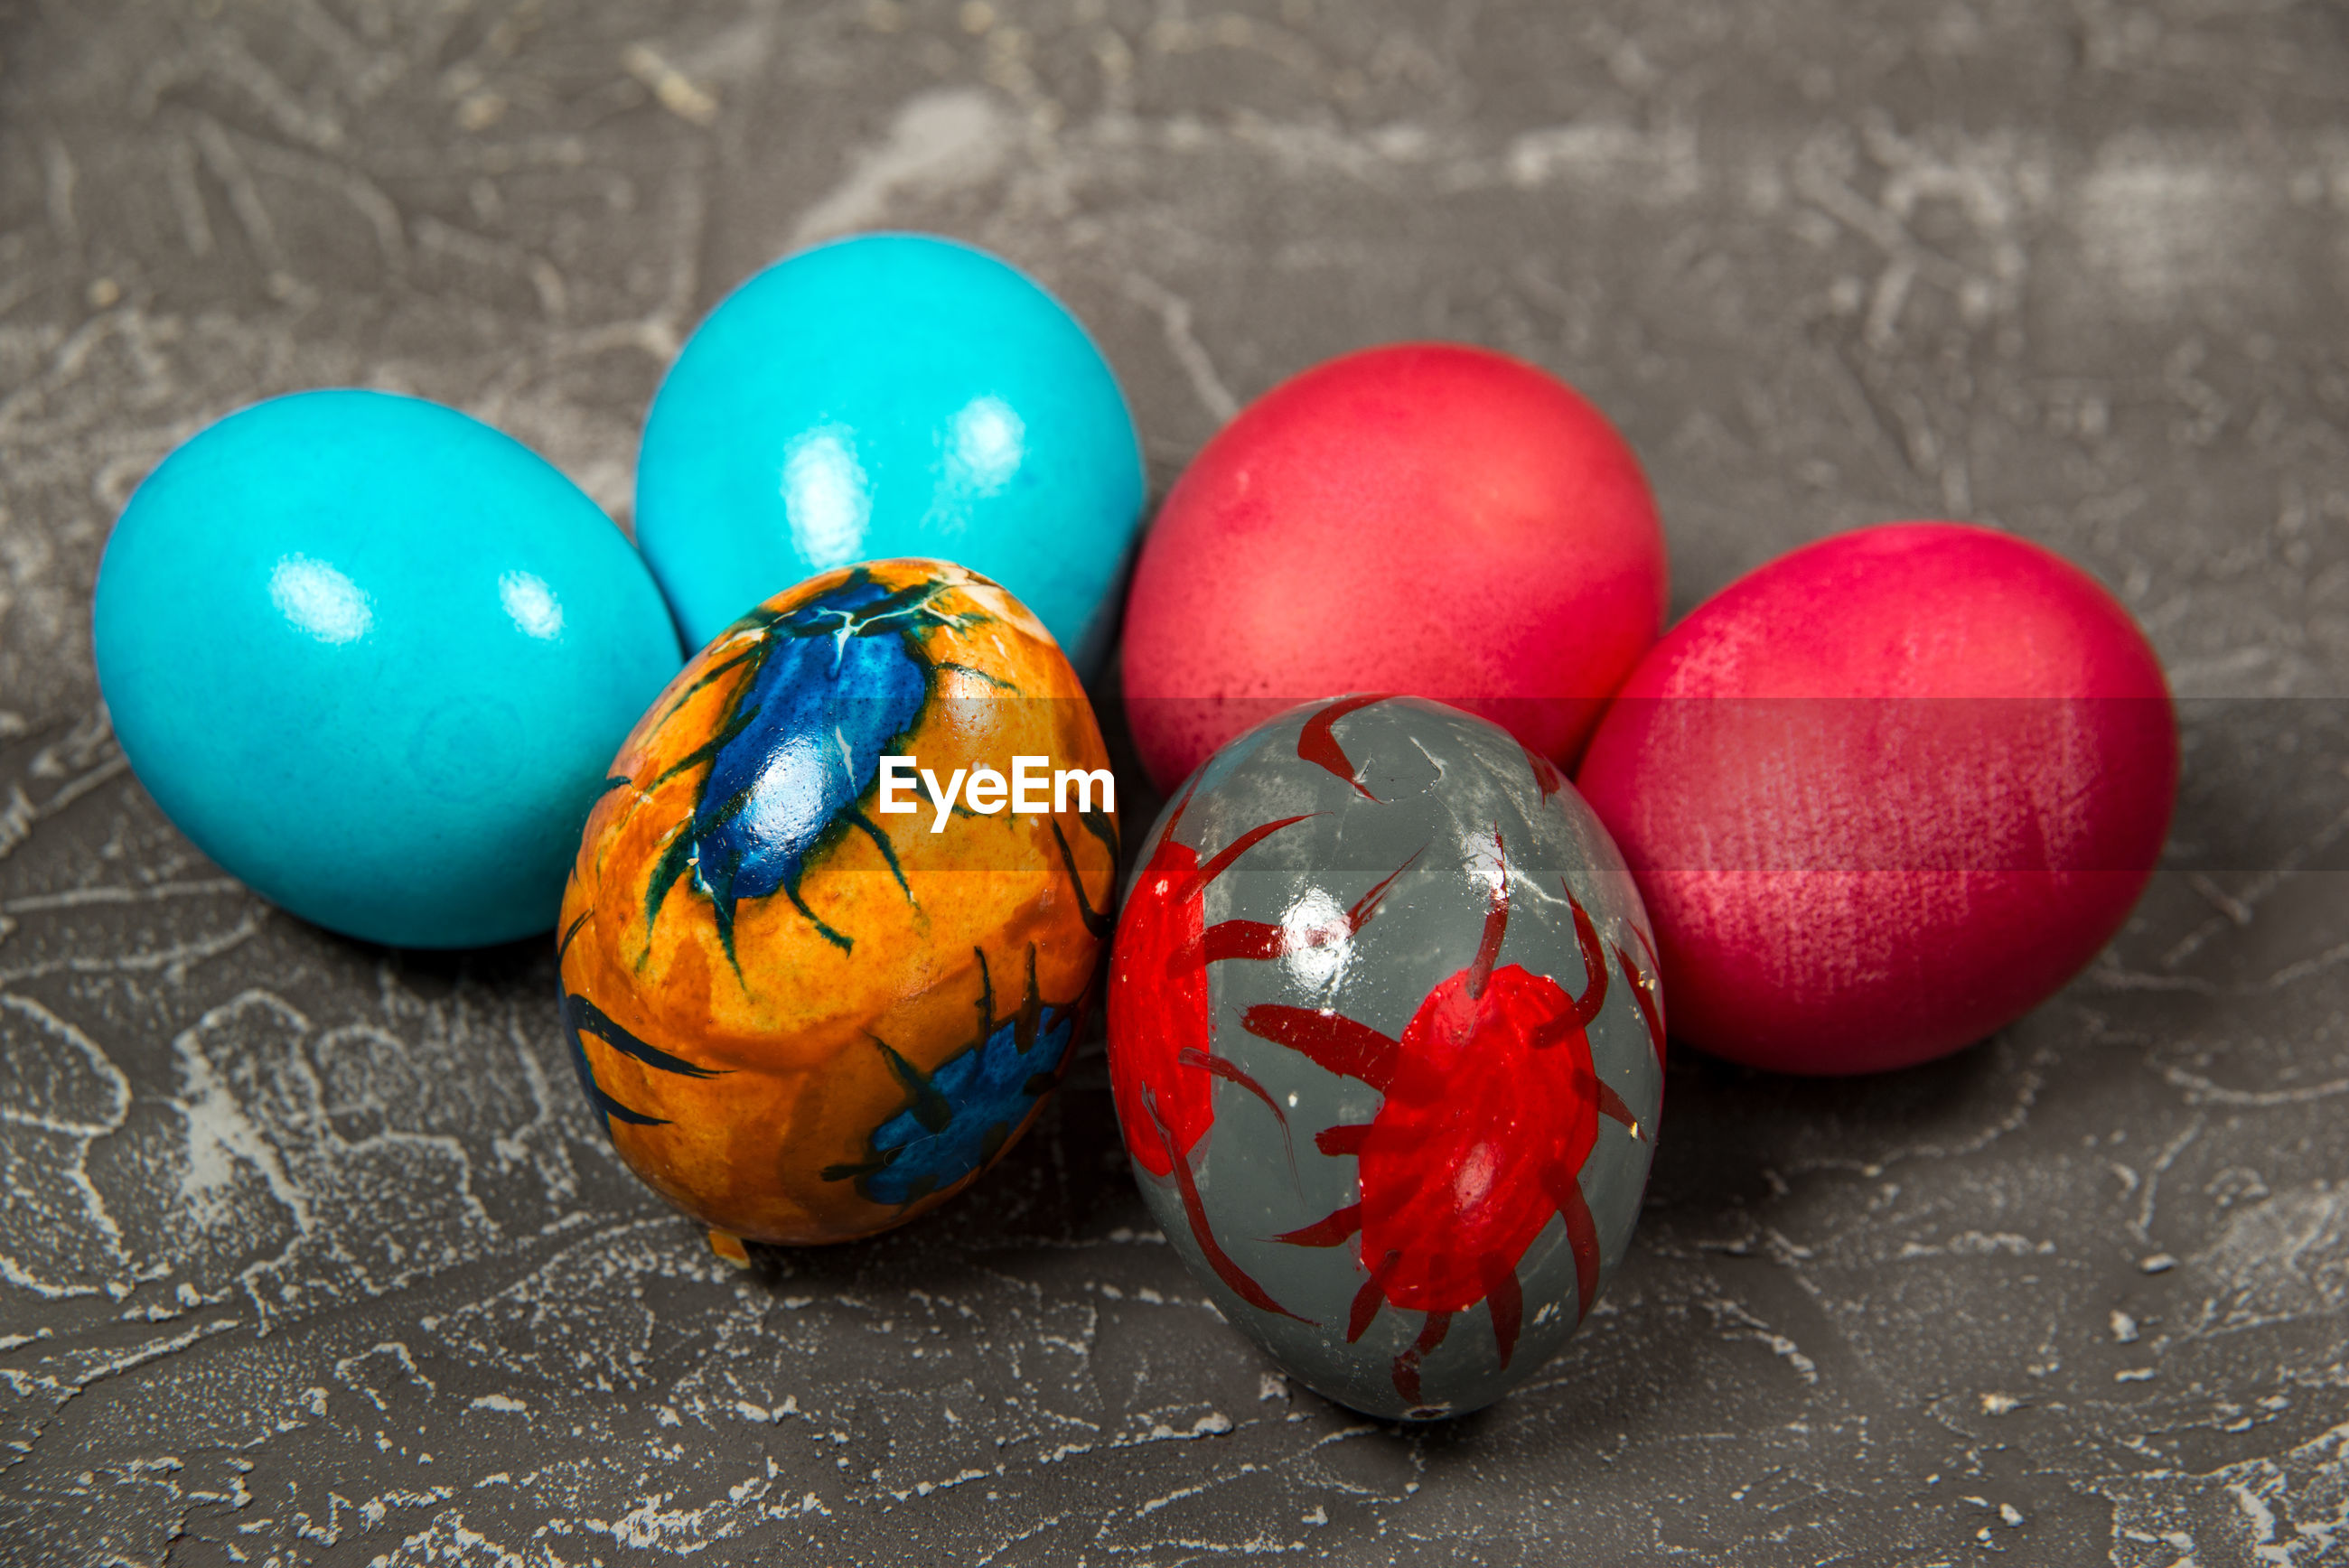 HIGH ANGLE VIEW OF MULTI COLORED EGGS ON STREET